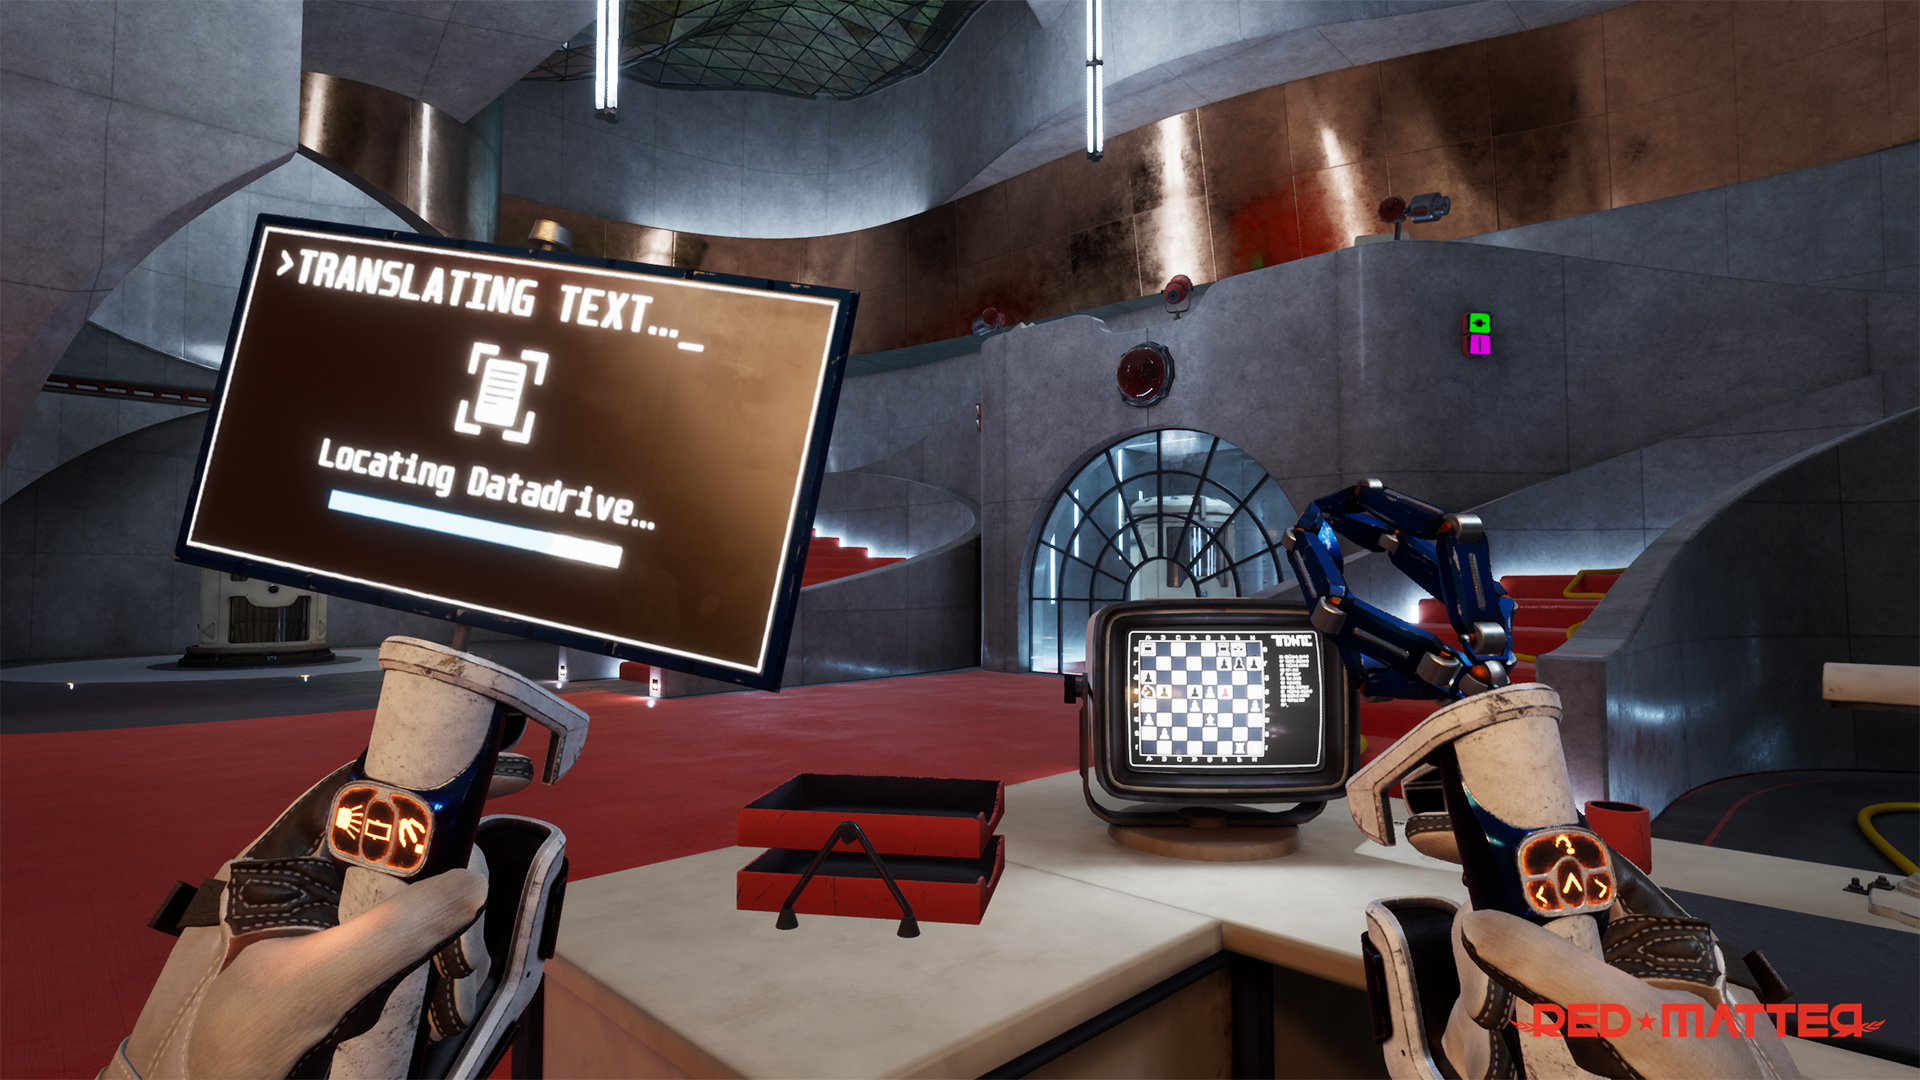 Sci-fi VR adventure Red Matter is coming to Oculus Quest